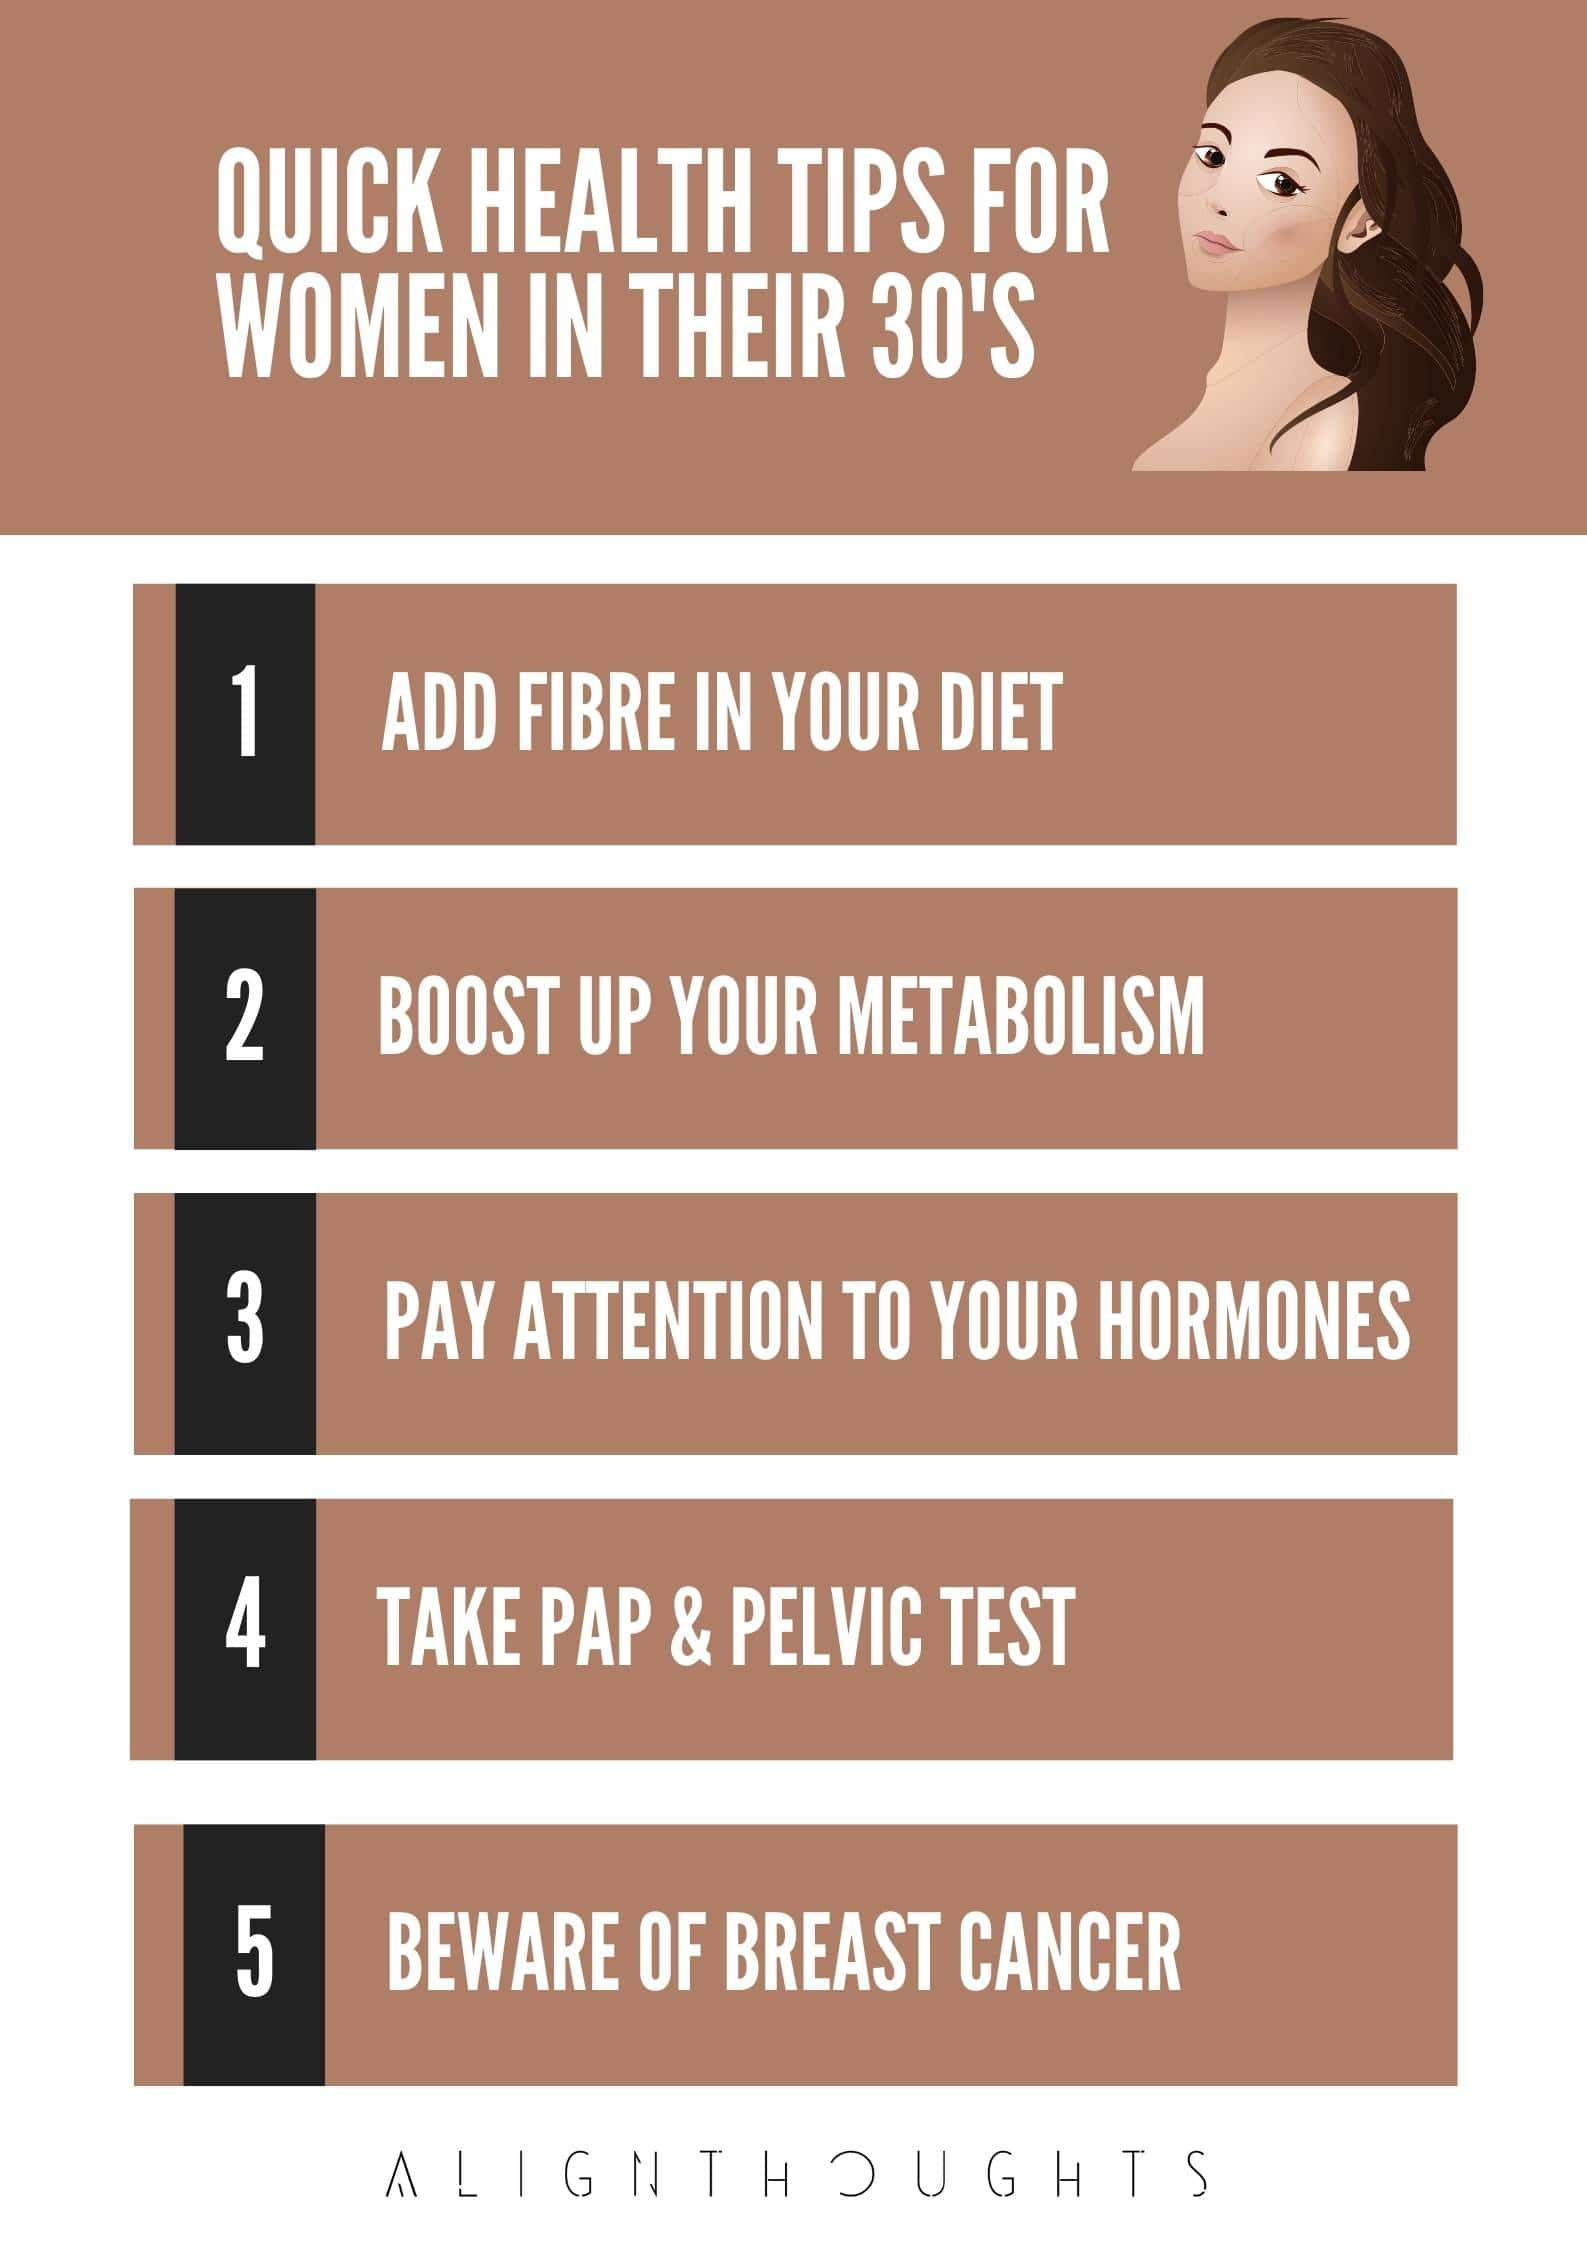 health tips for women-alignthoughts